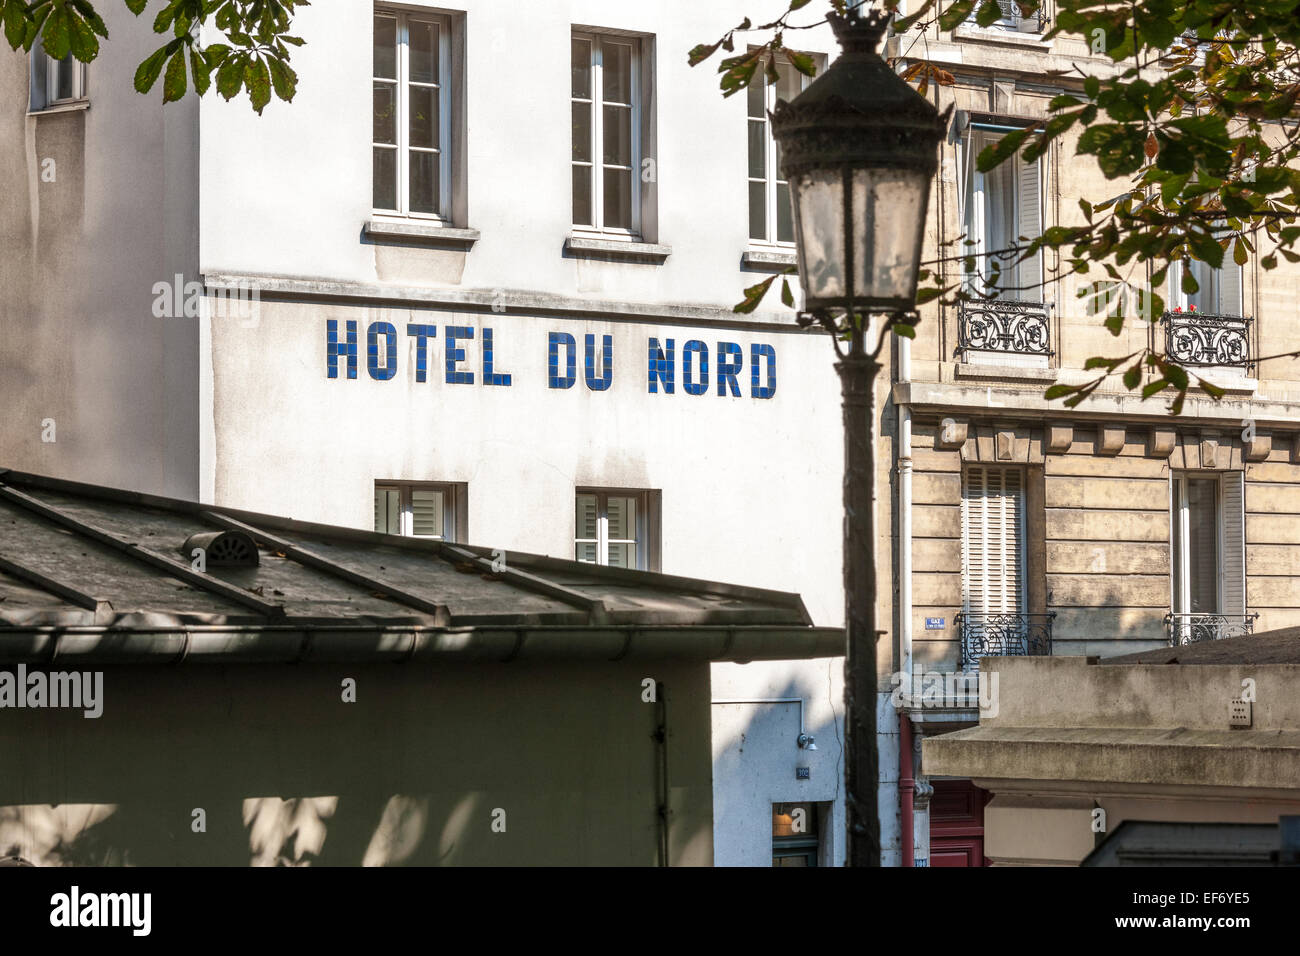 Paris Hotel du Nord famous filming location on on the banks of the Canal St. Martin in Paris, Canal Saint Martin. - Stock Image